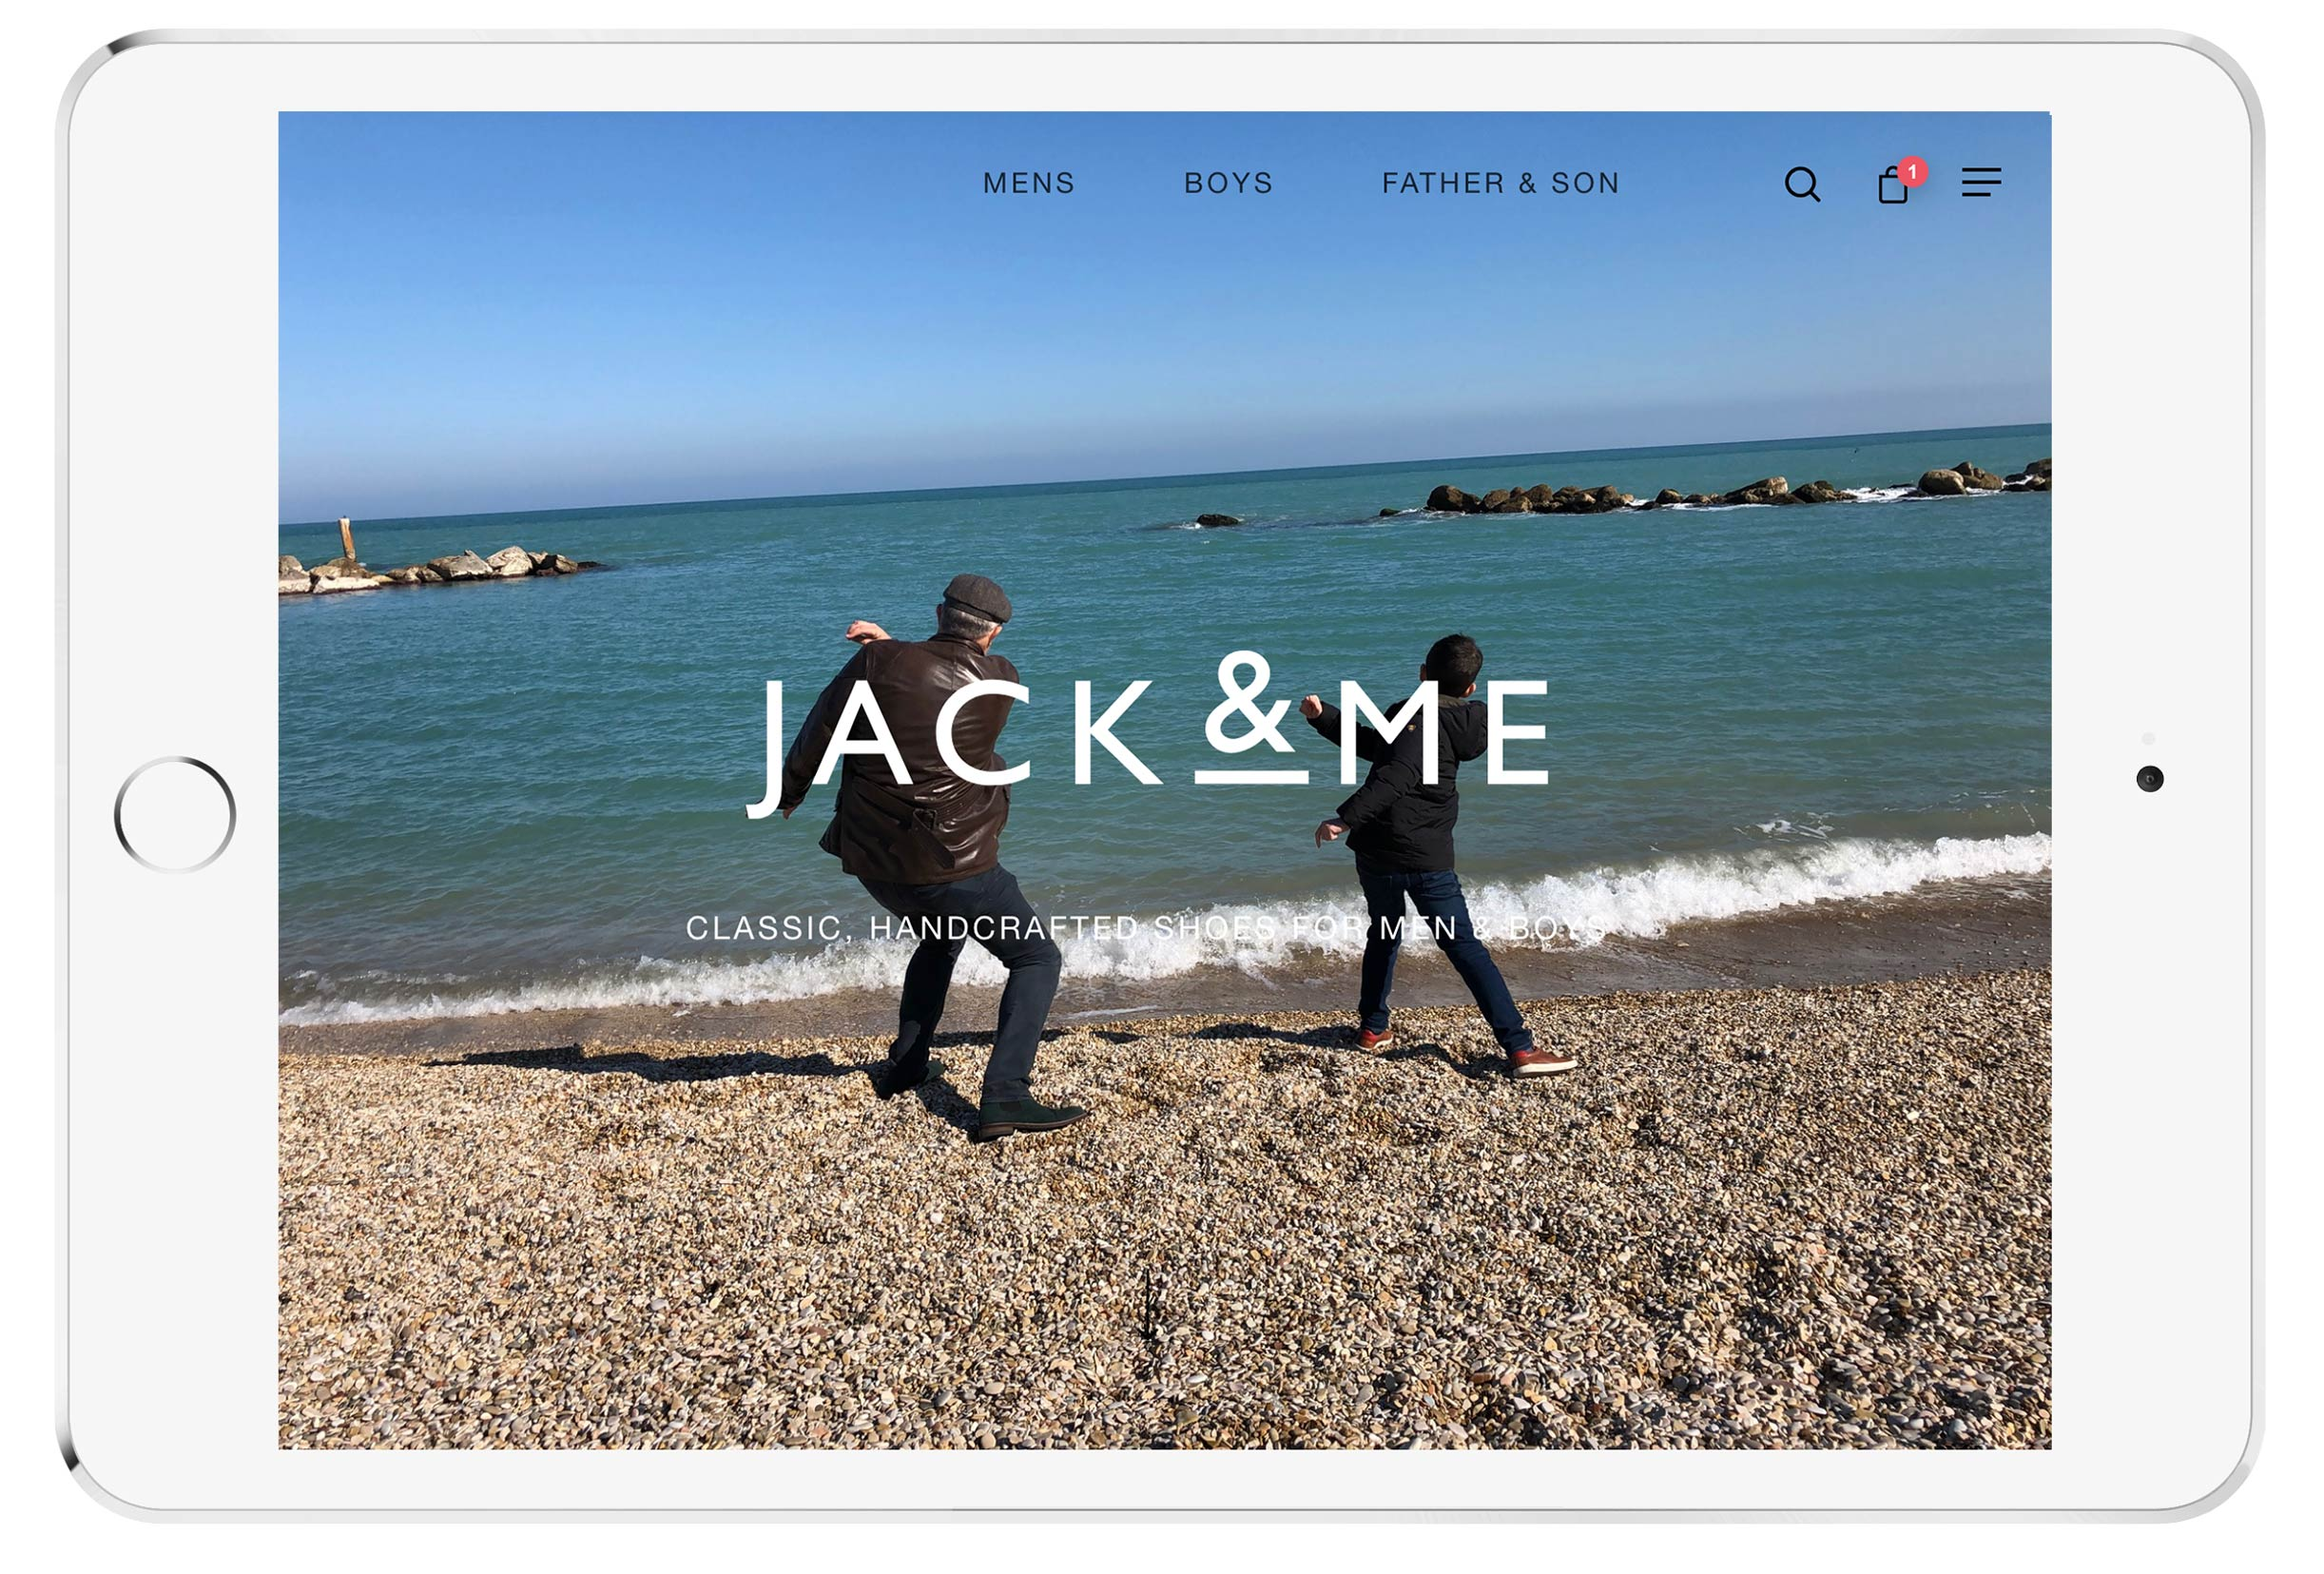 jack and me ecommerce website mockup